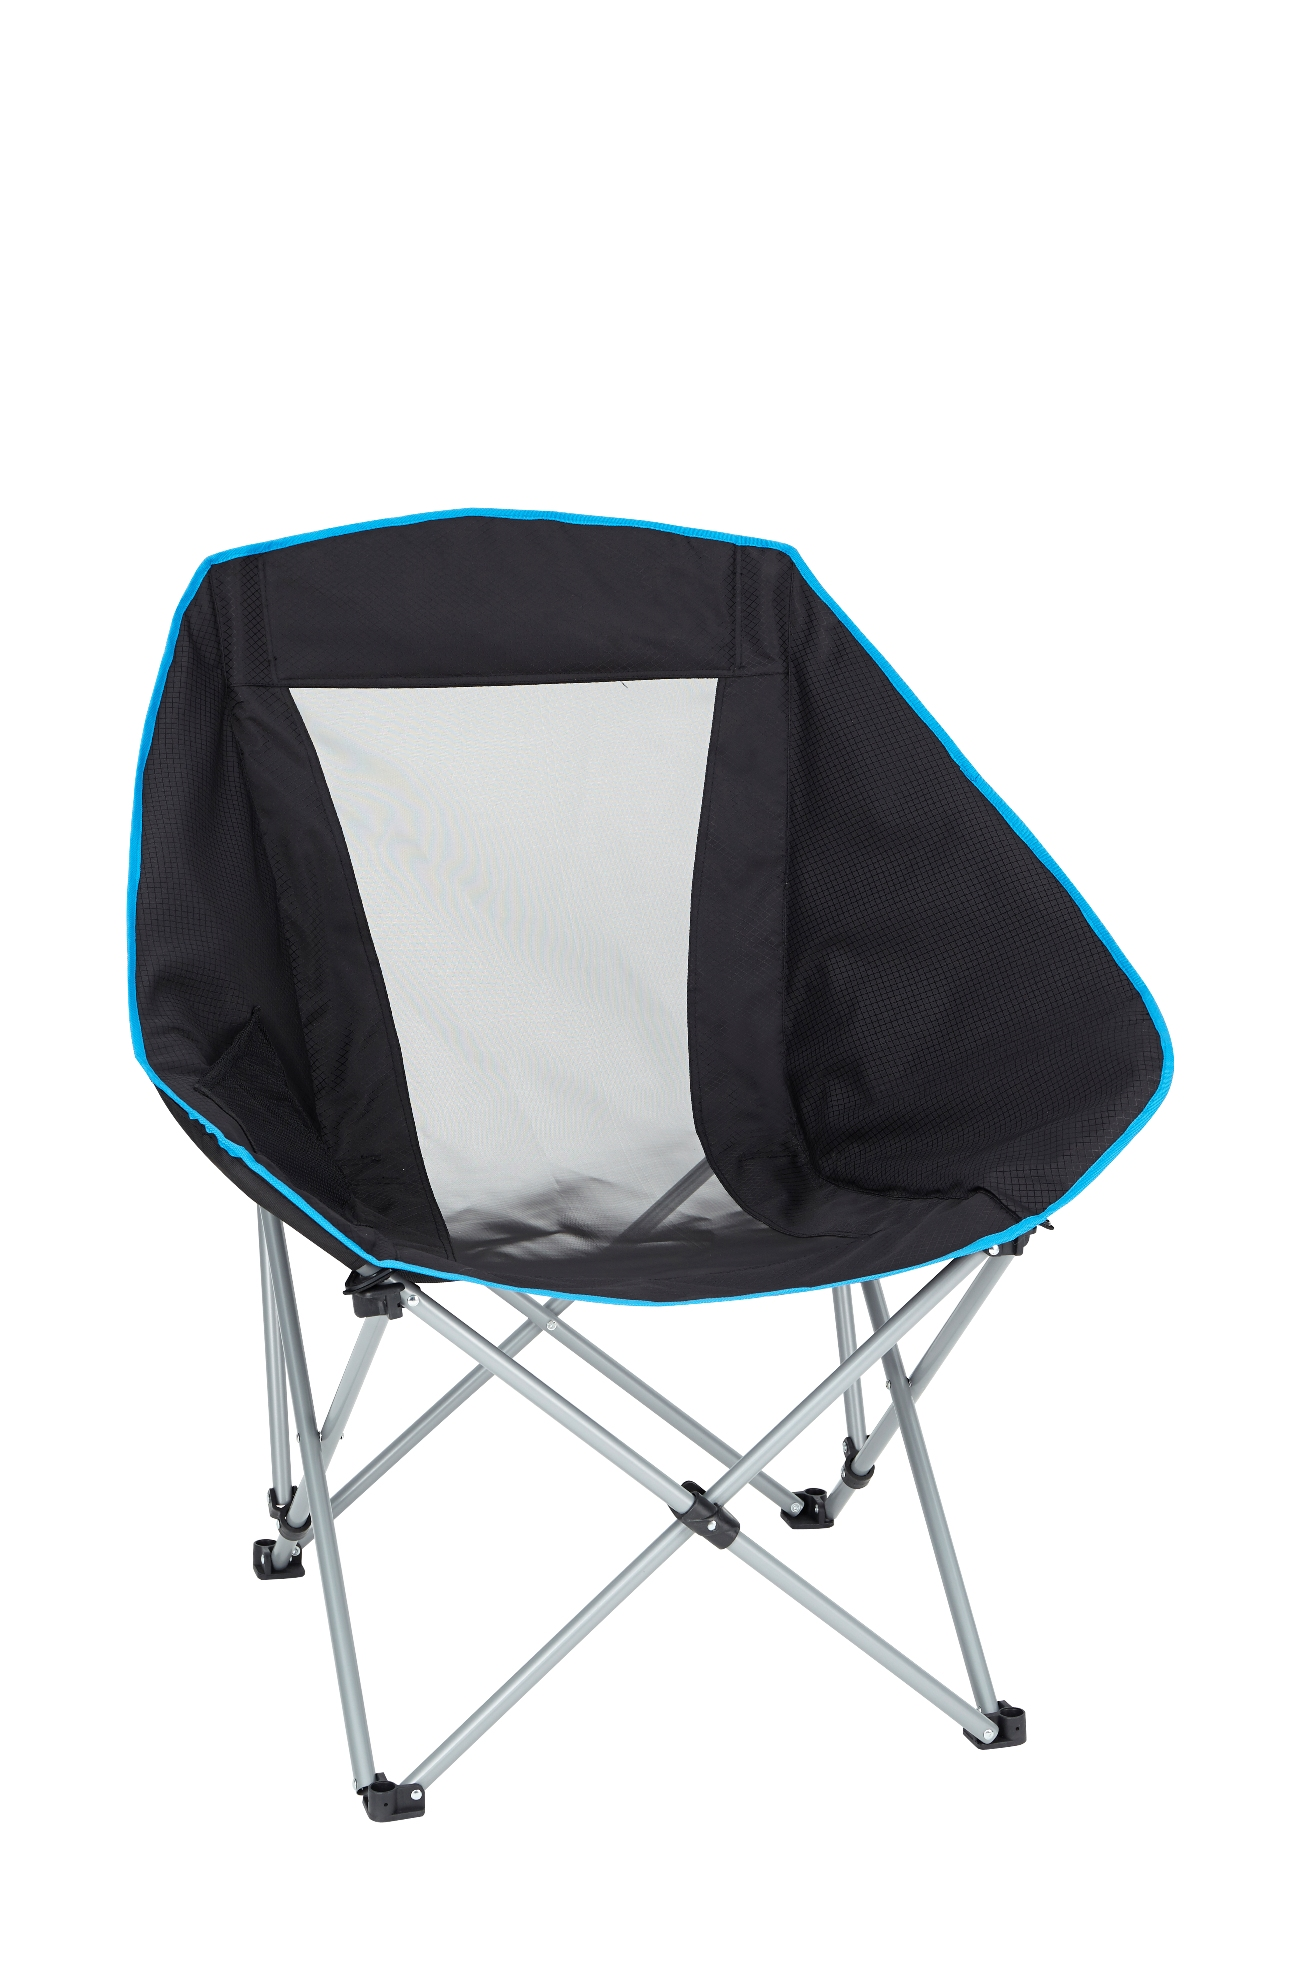 outdoor sports chairs cotton banquet chair covers oversized club black fitness and